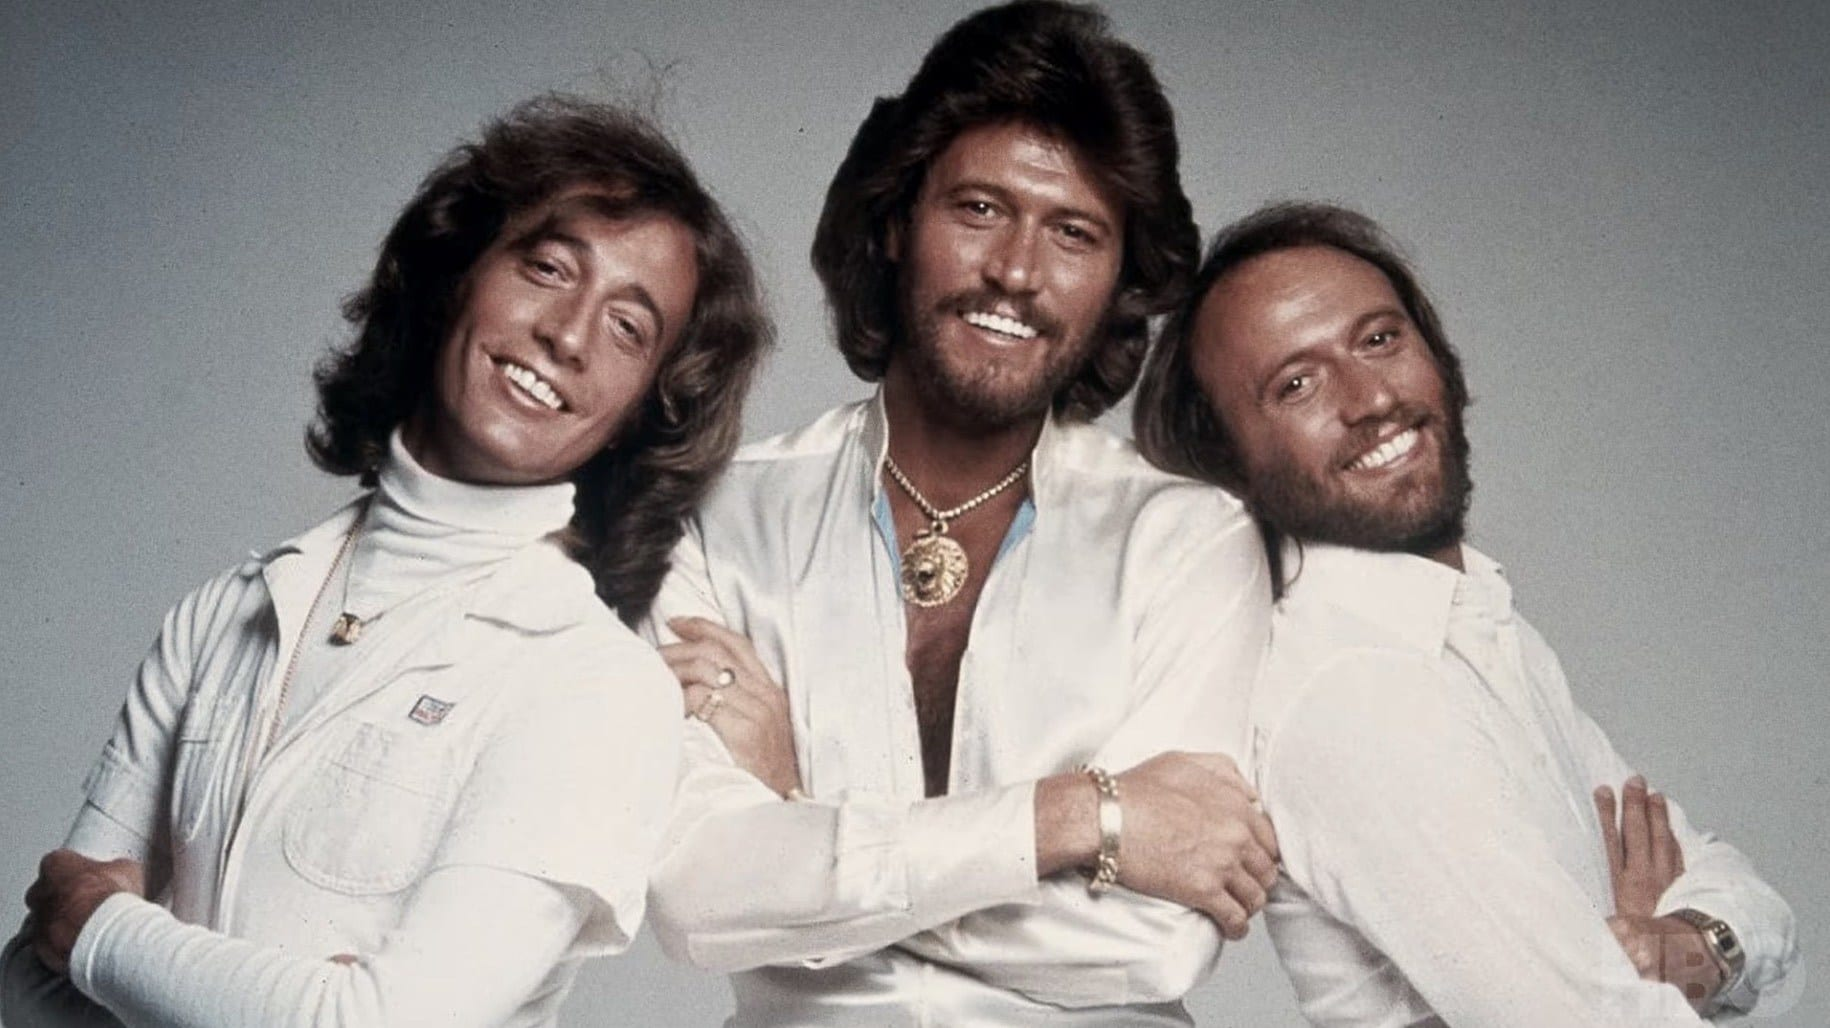 The Bee Gees: How Can You Mend a Broken Heart – Official Trailer